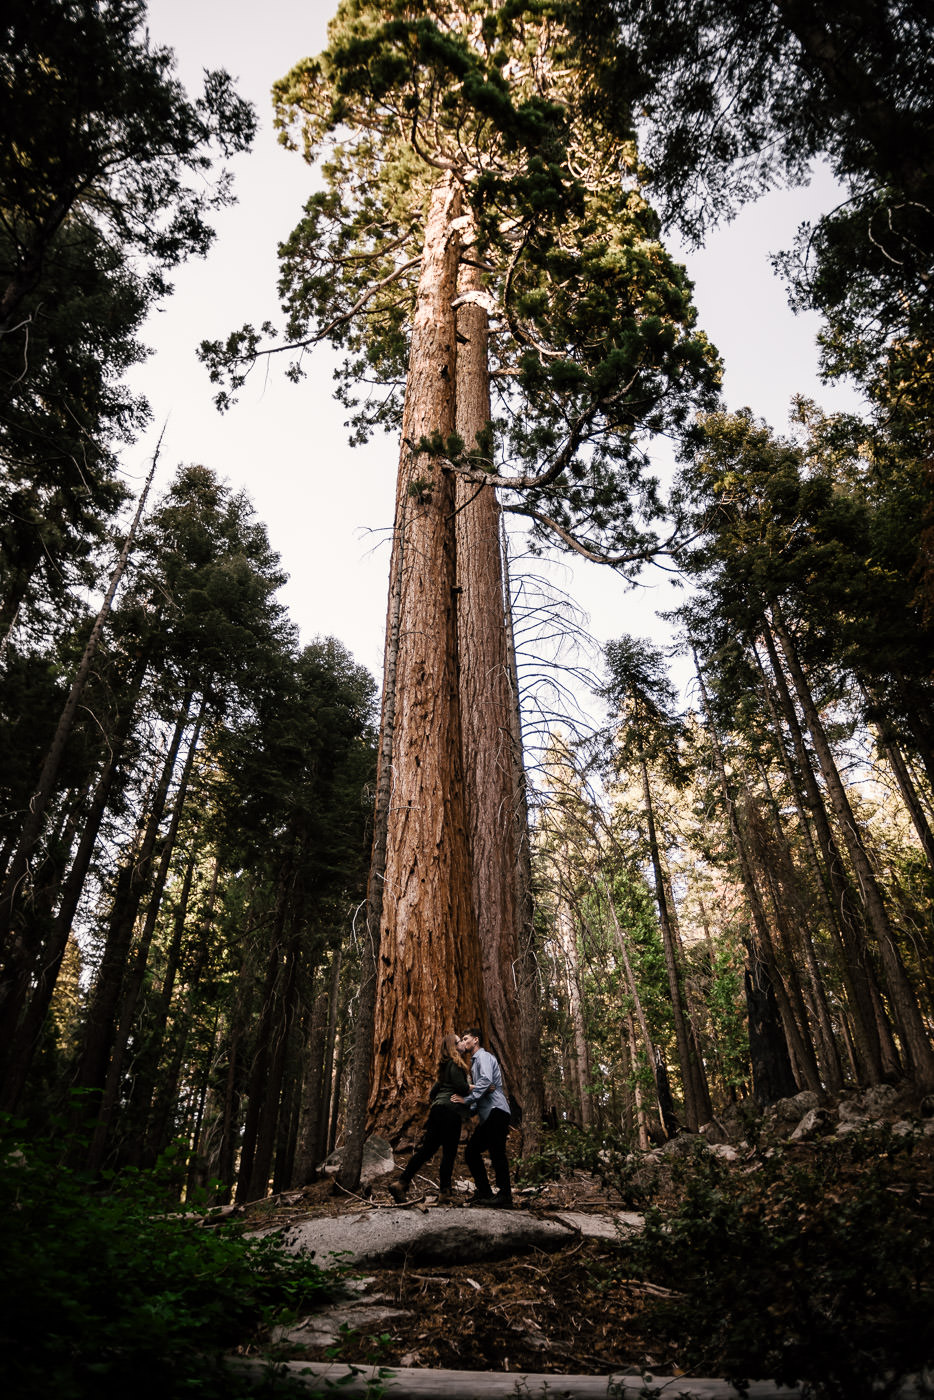 Sequoia ELOPEMENTS $1,890 - What could be better than eloping with your loved one to the towering forests and quiet meadows of Sequoia National Park? Sequoia is an ideal elopement destination for those who have always dreamed of tying the knot in quiet forest. From sunrise till sunset, we can explore the park taking in sights, and creating beautiful portraits you and your love will treasure for a lifetime. Let's have an adventure!ELOPEMENT COVERAGEAll day coverageAll photos on a USB drivePrint releasePersonalized slideshow digital filePrivate web gallery